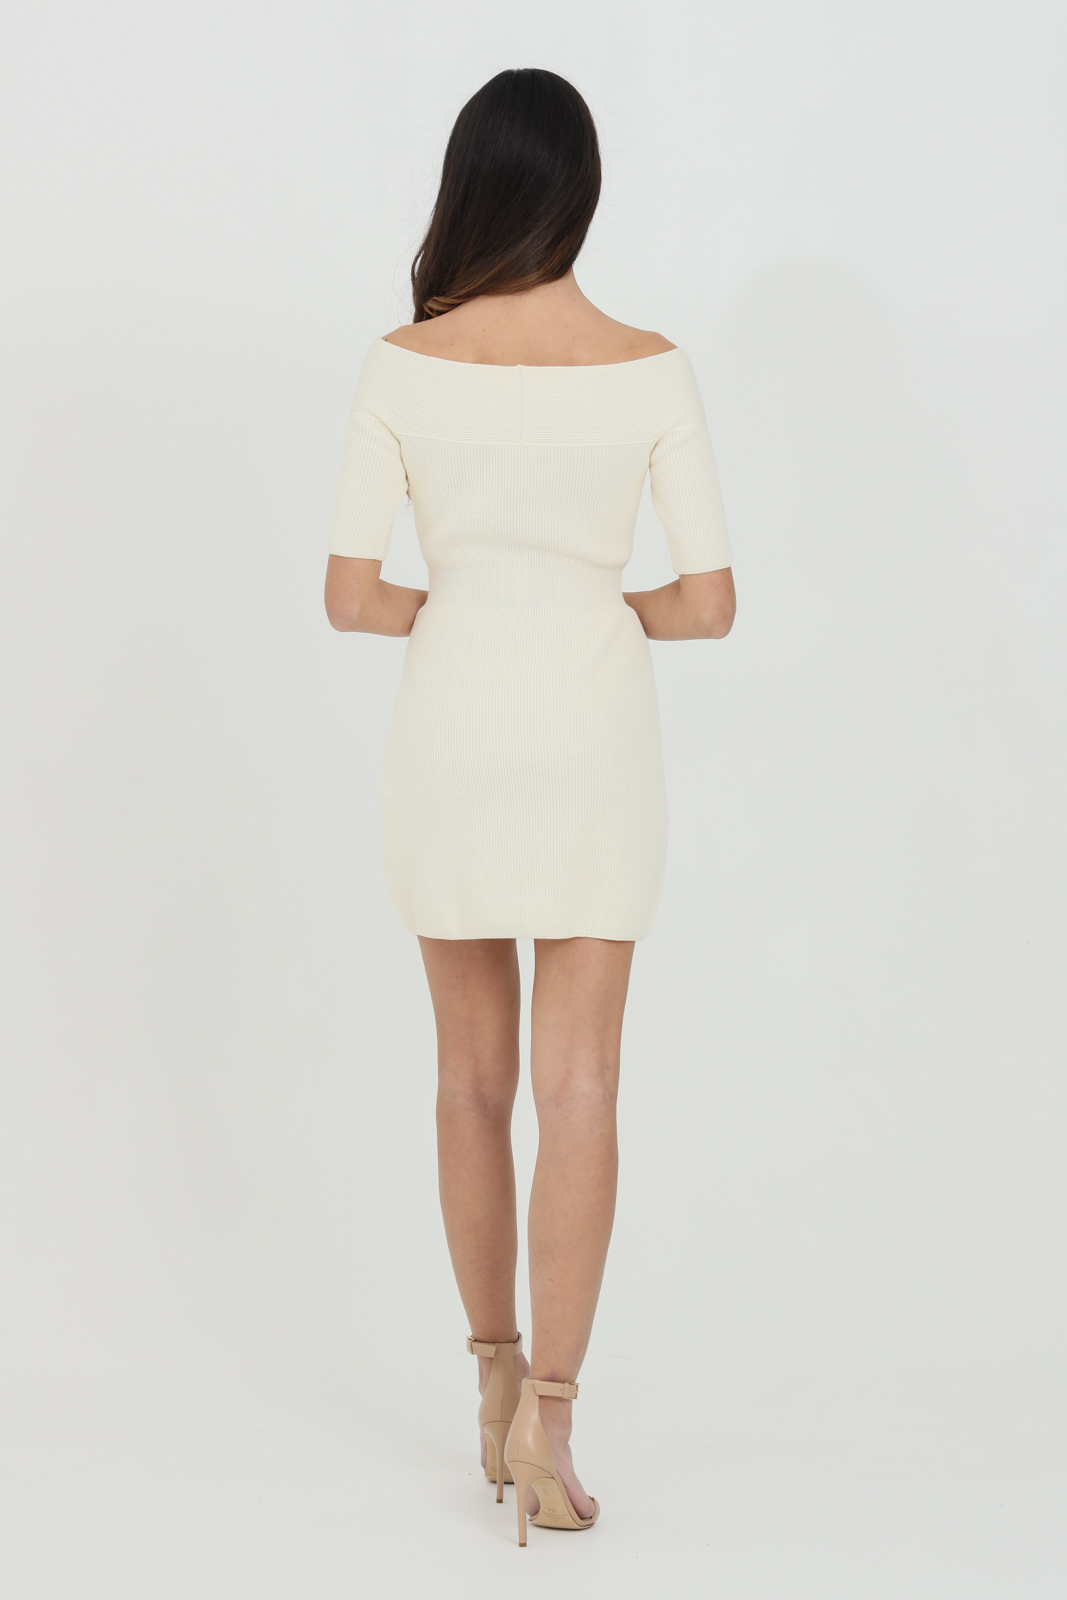 Mini double-breasted dress ELISABETTA FRANCHI | Dress | AM07Q11E2193